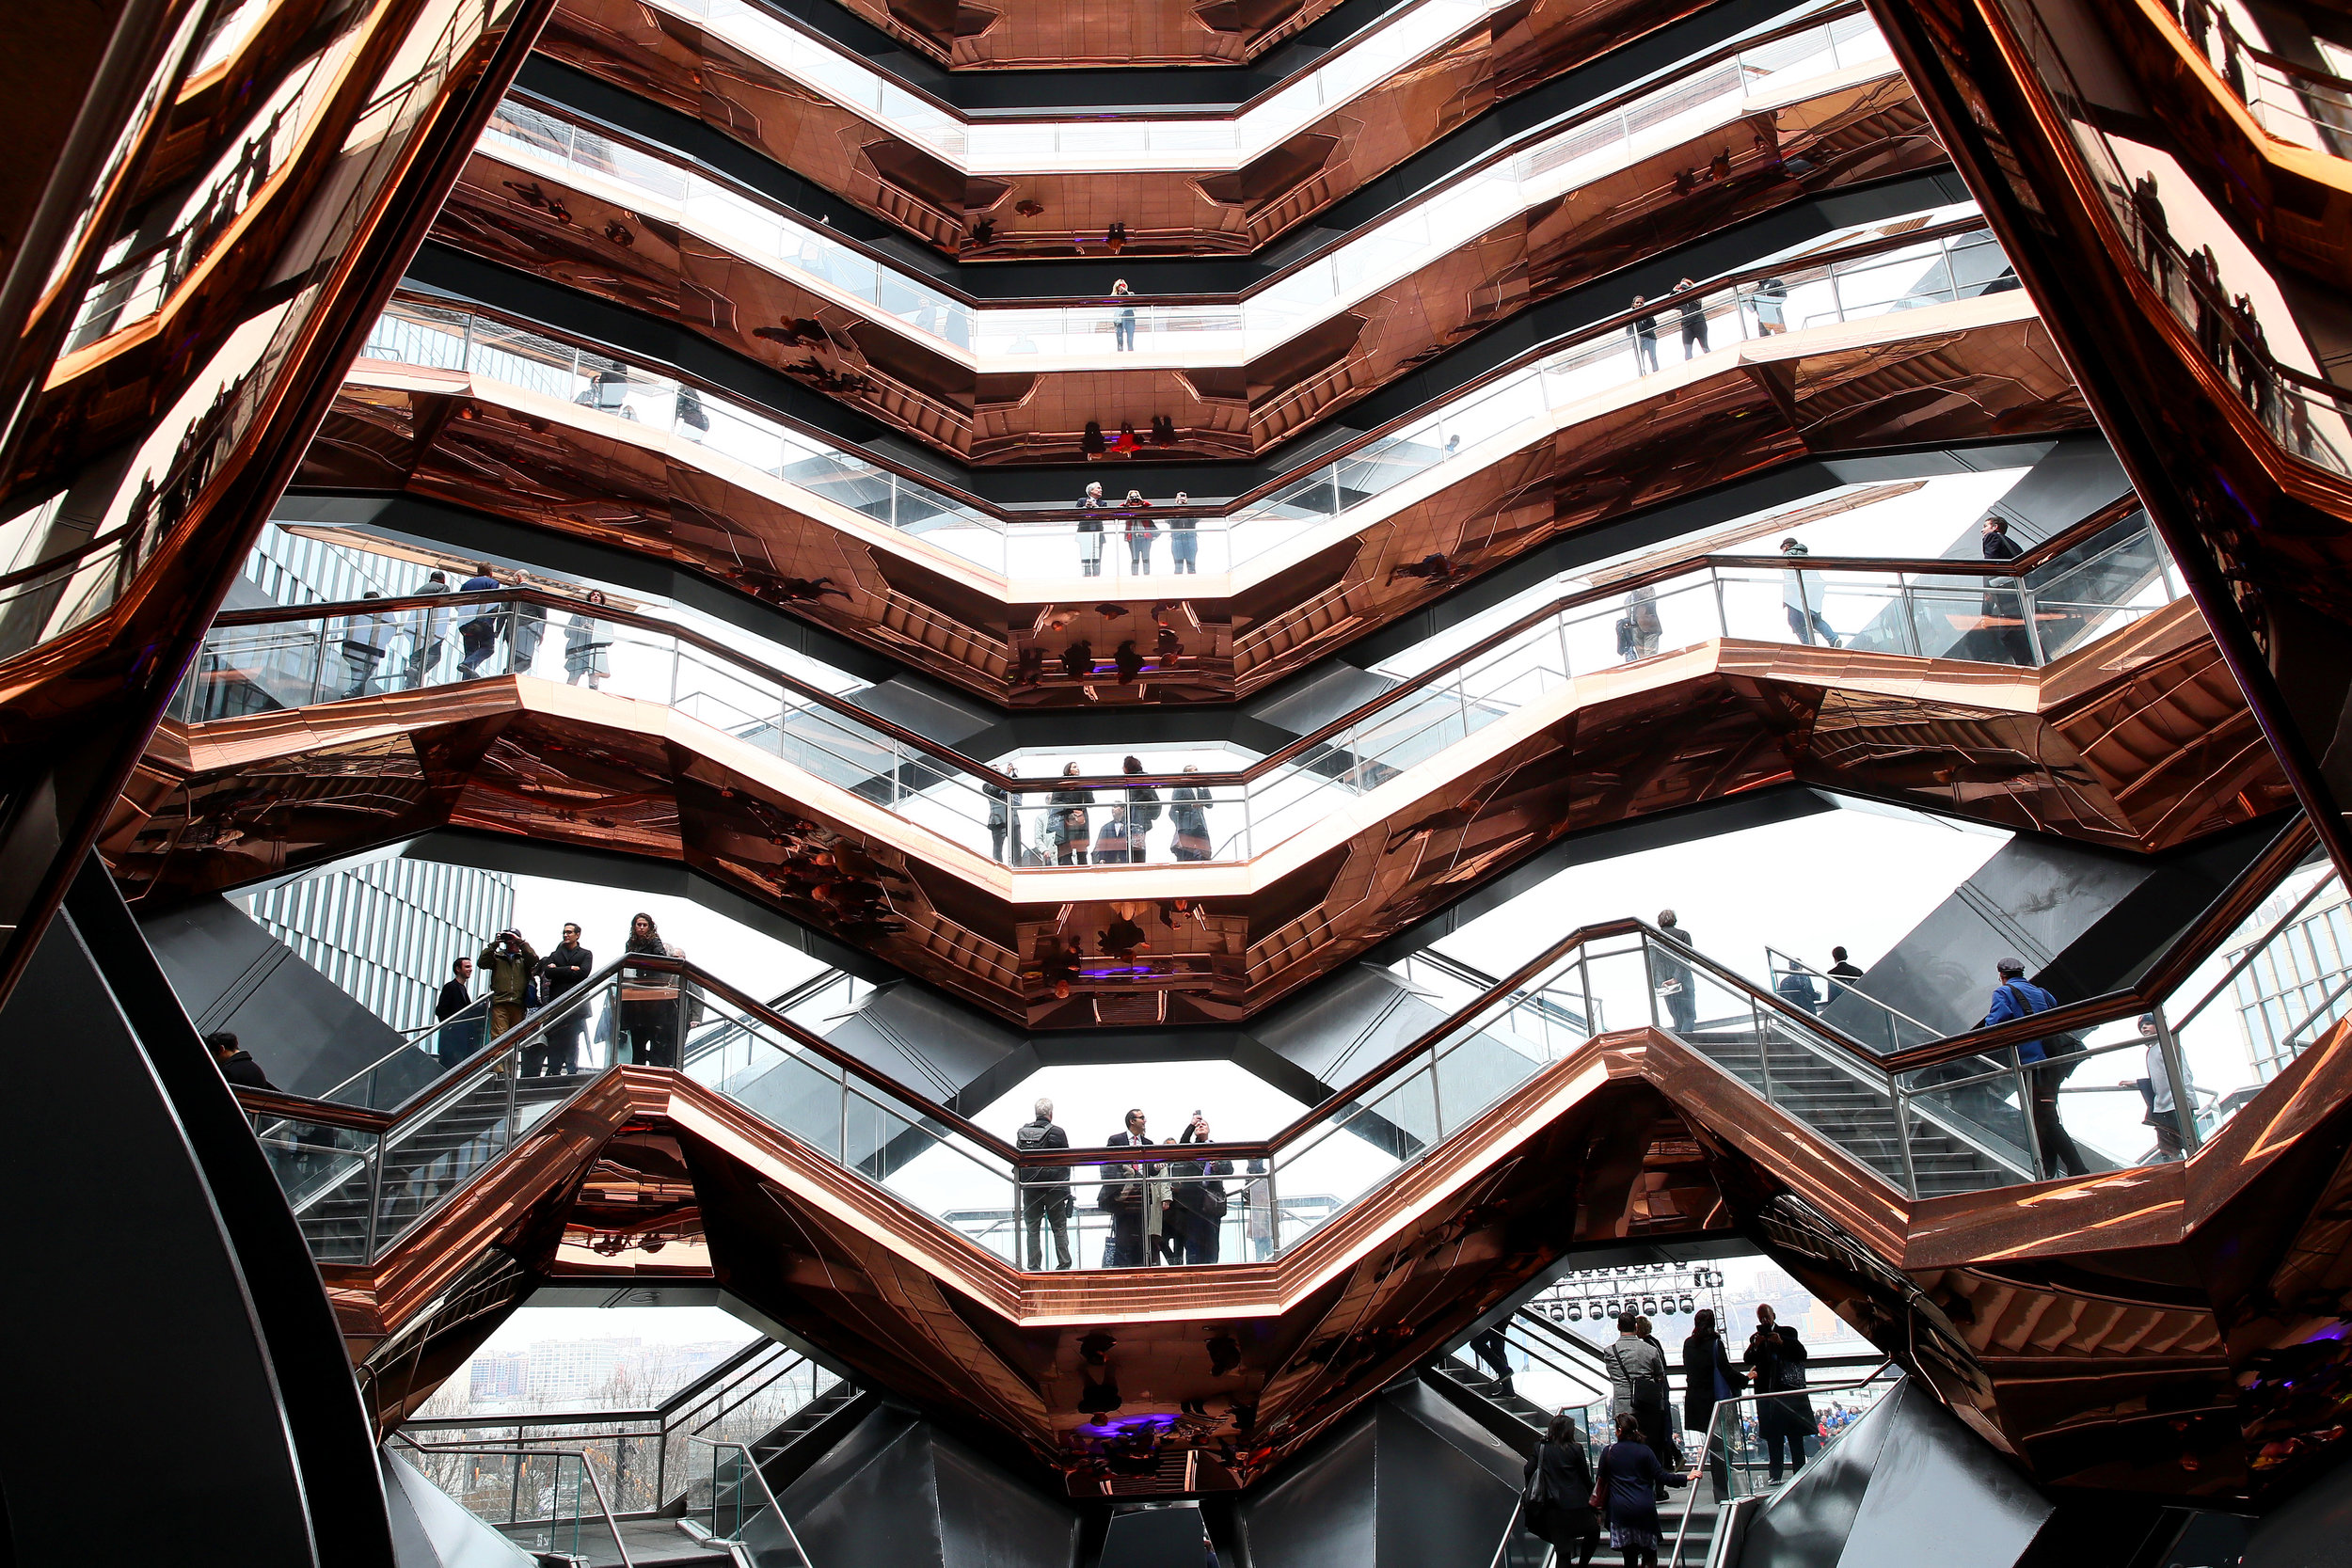 The Hudson Yards Neighborhood Officially Opens As Related Companies And Oxford Properties Group Celebrate Historic NYC Milestone